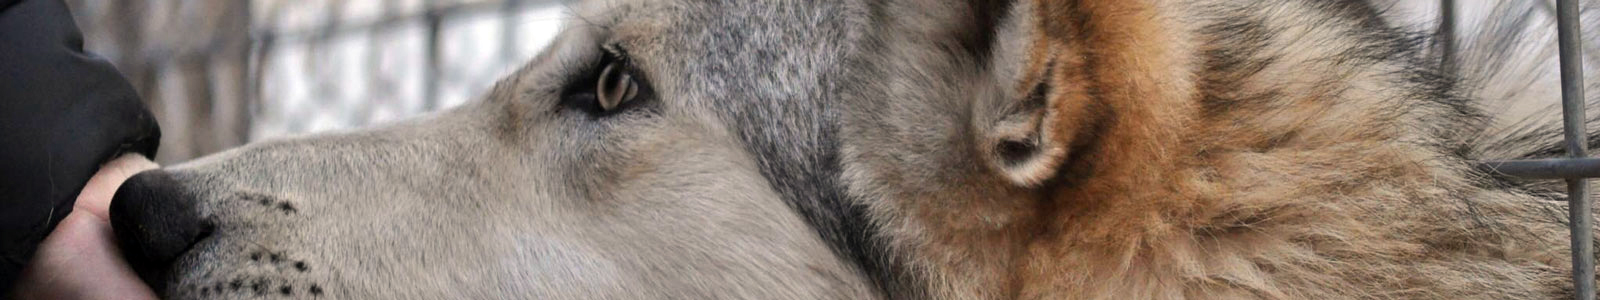 Texas Wolfdog Project Head, Muzzle, Nose Header Image